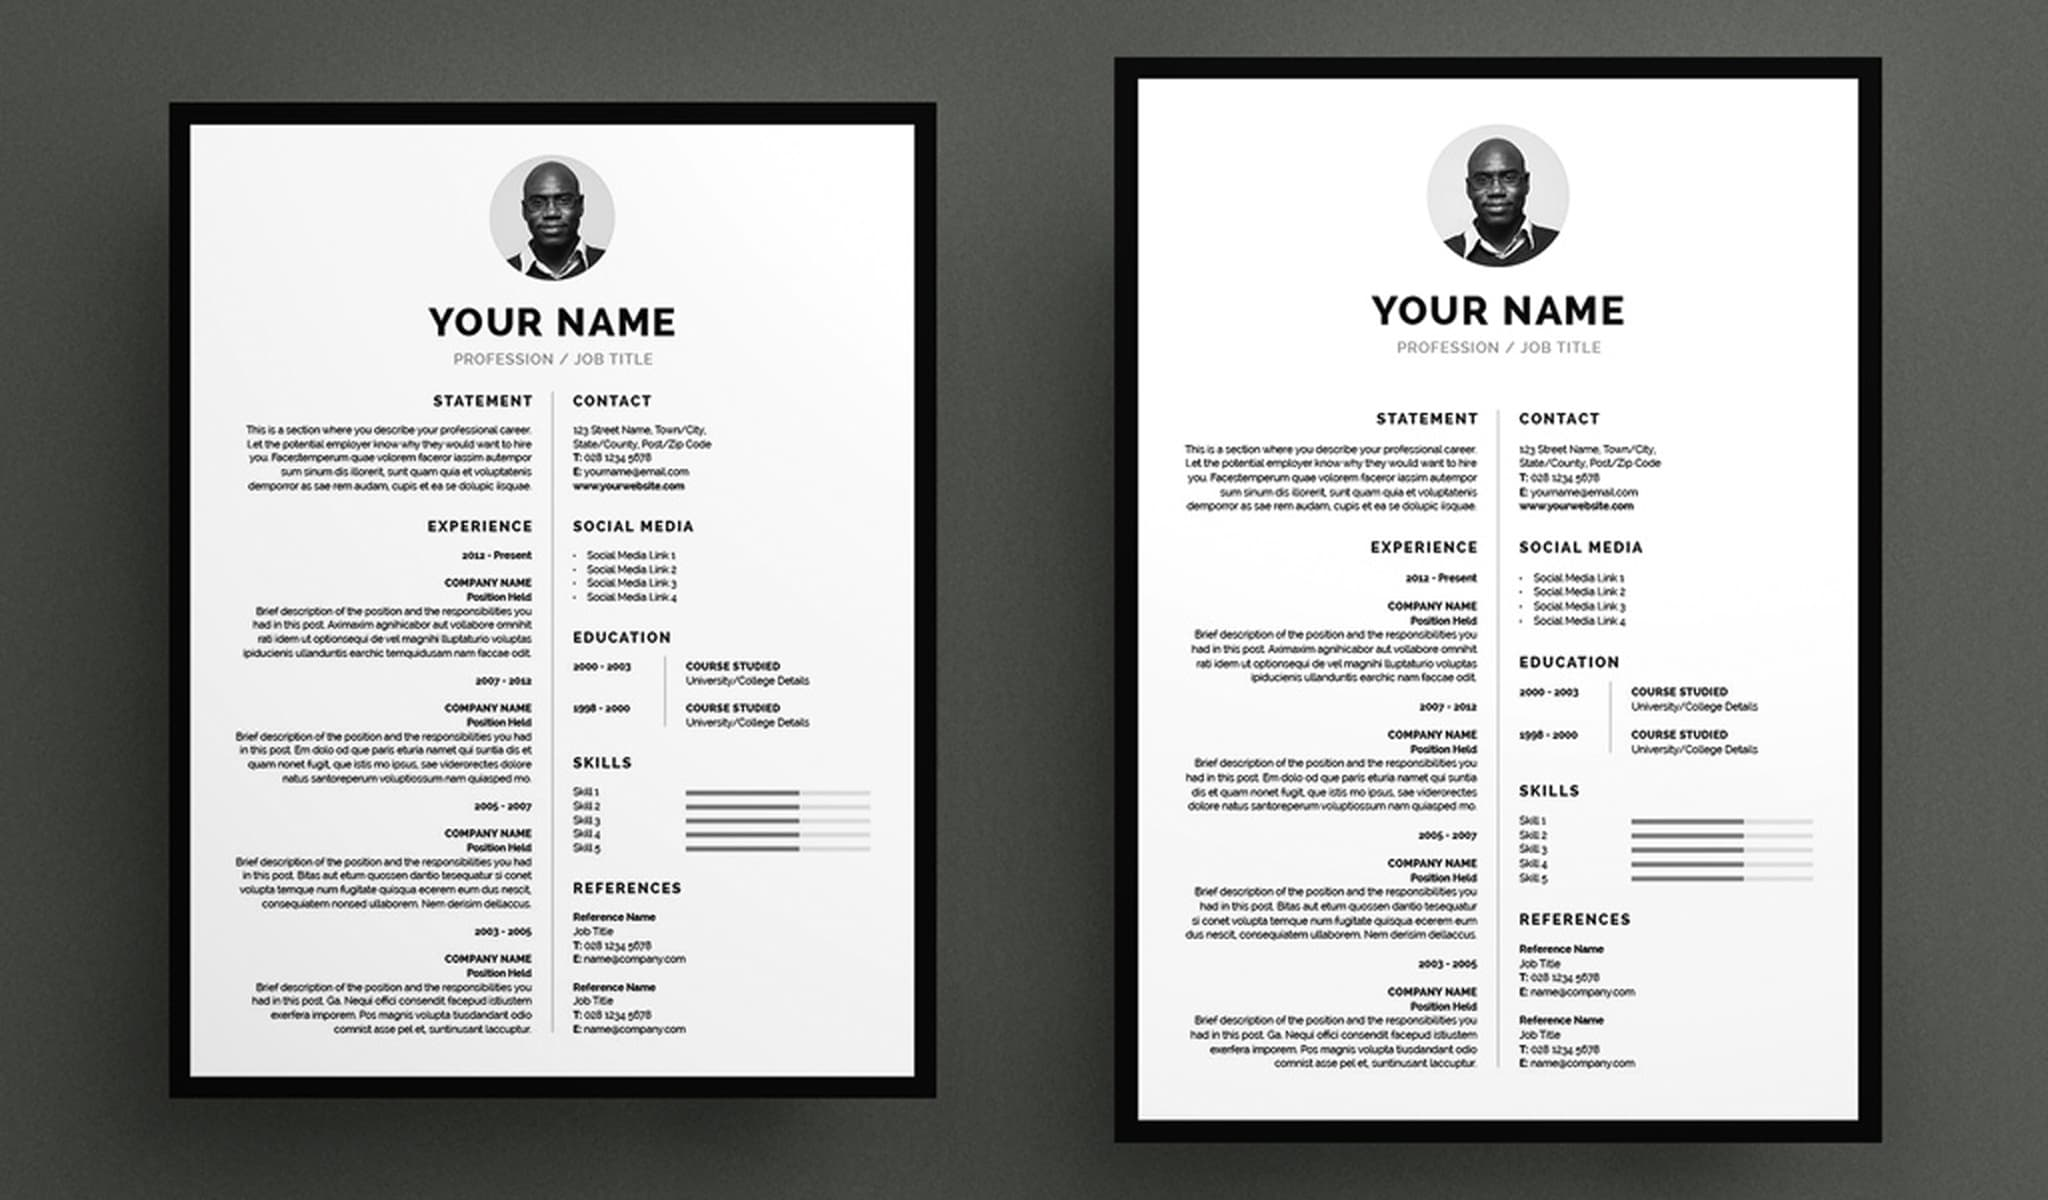 Bordered Resume and Cover Letter Layout